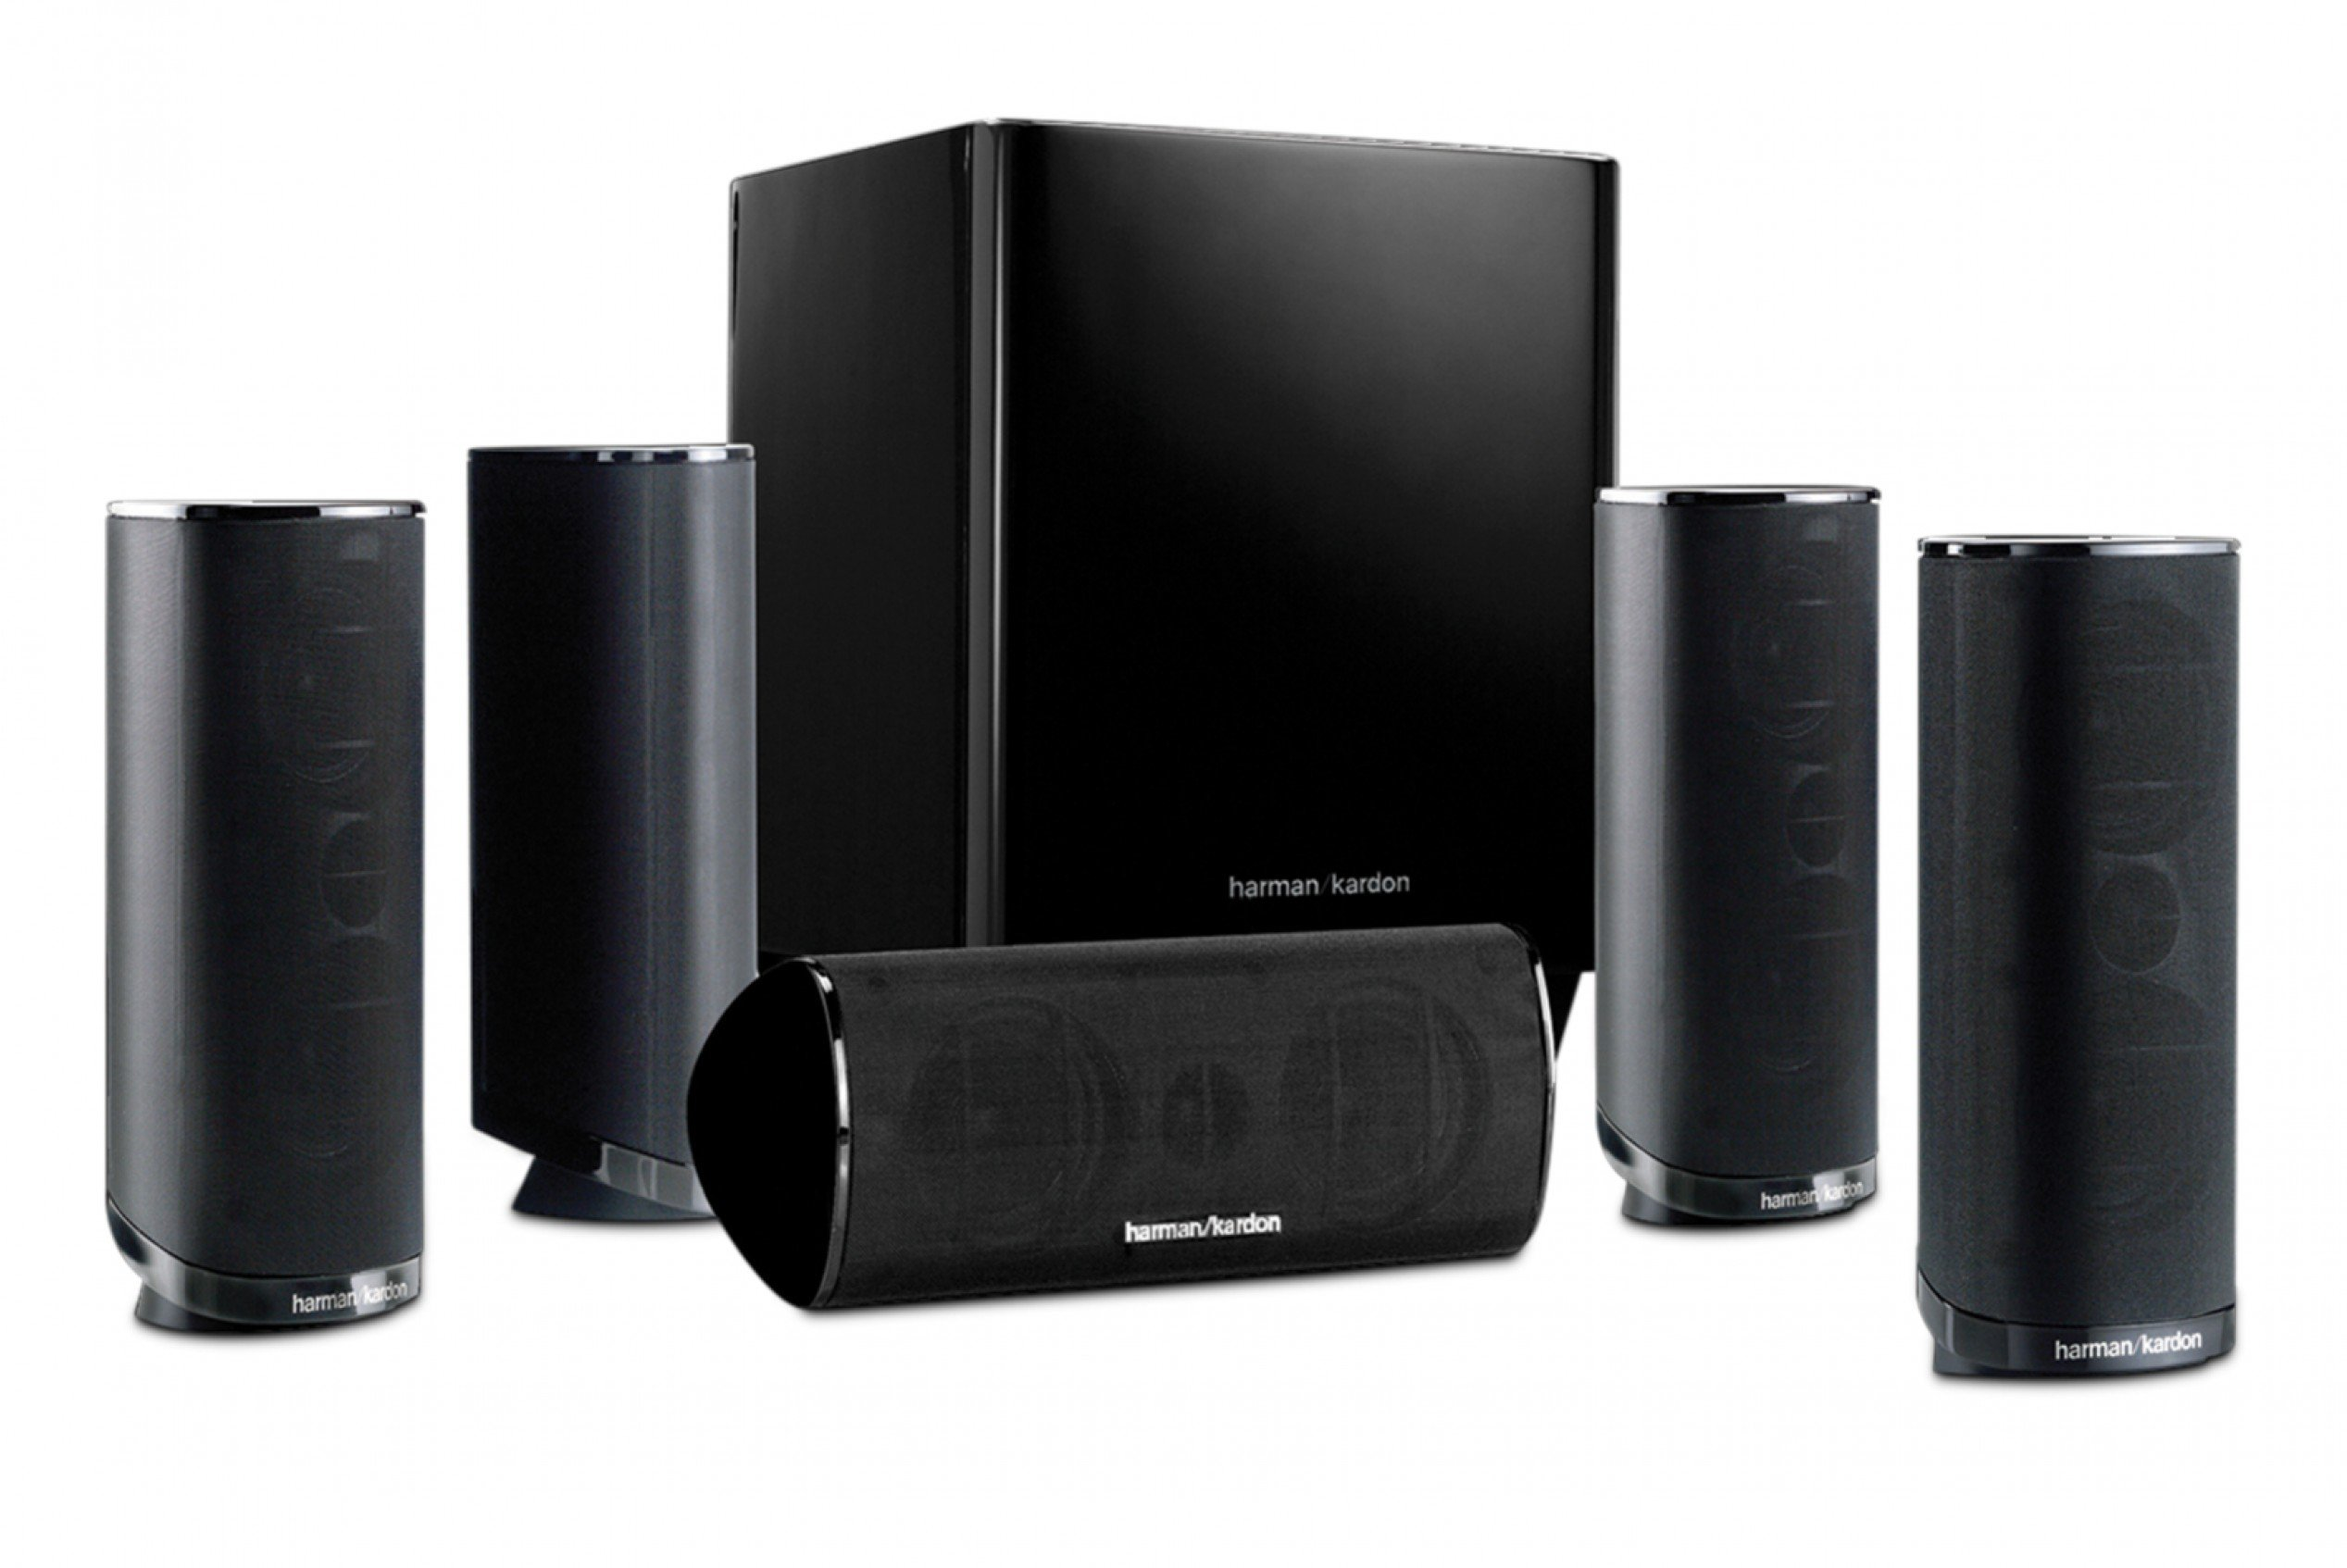 Amazon.com: Harman Kardon HKTS 16BQ 5.1 Channel Home Theater Speaker  Package (Black): Electronics